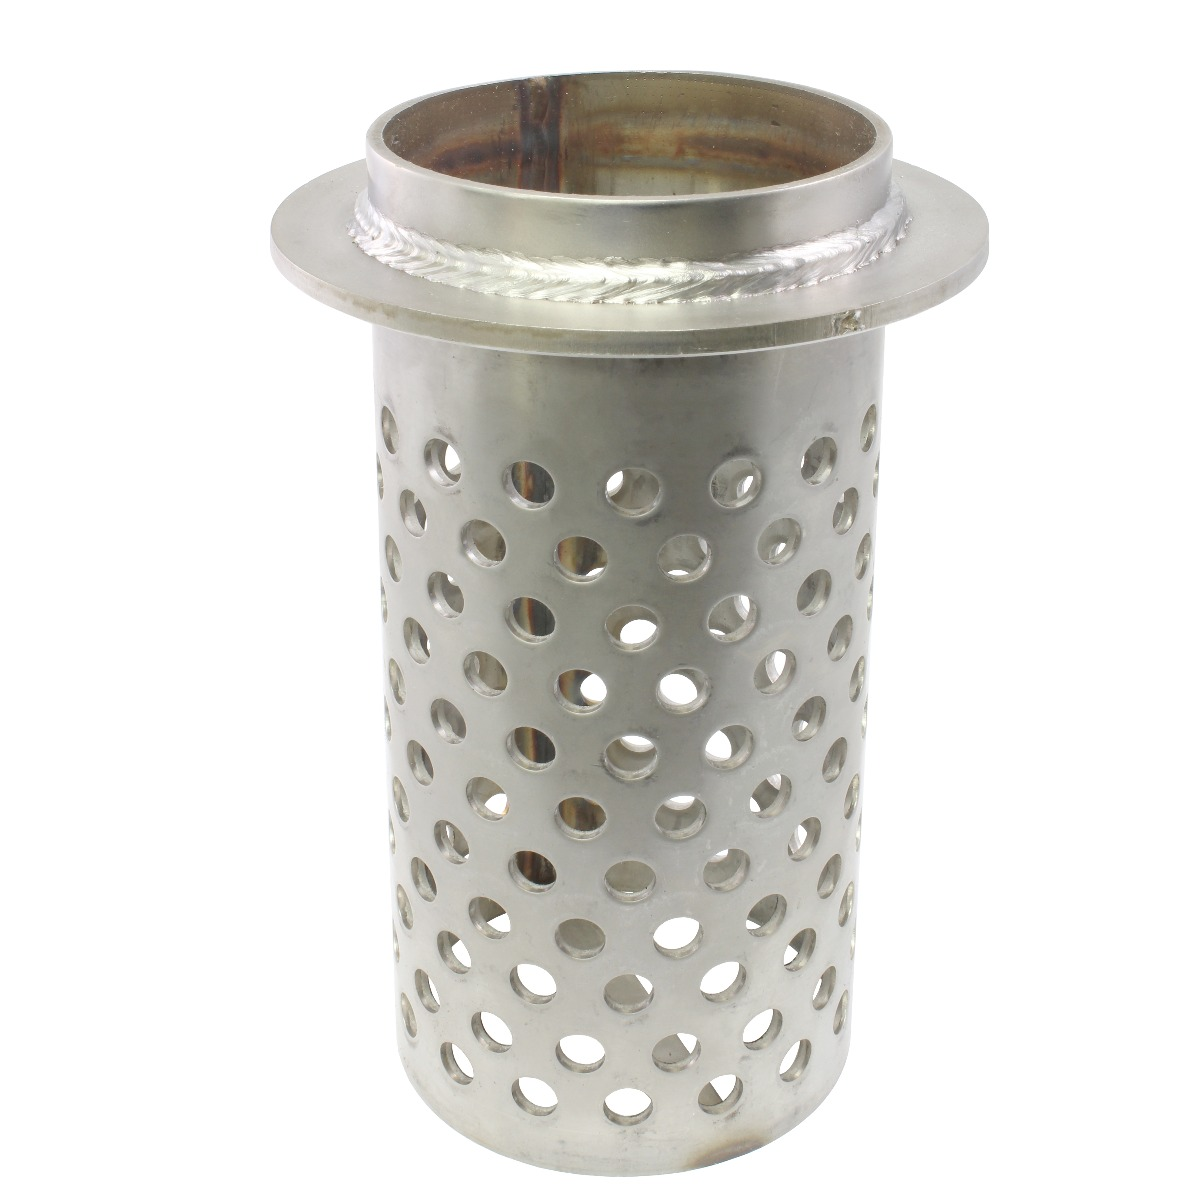 "Stainless Steel Perforated Flask - 4"" x 6"" - With Flange"